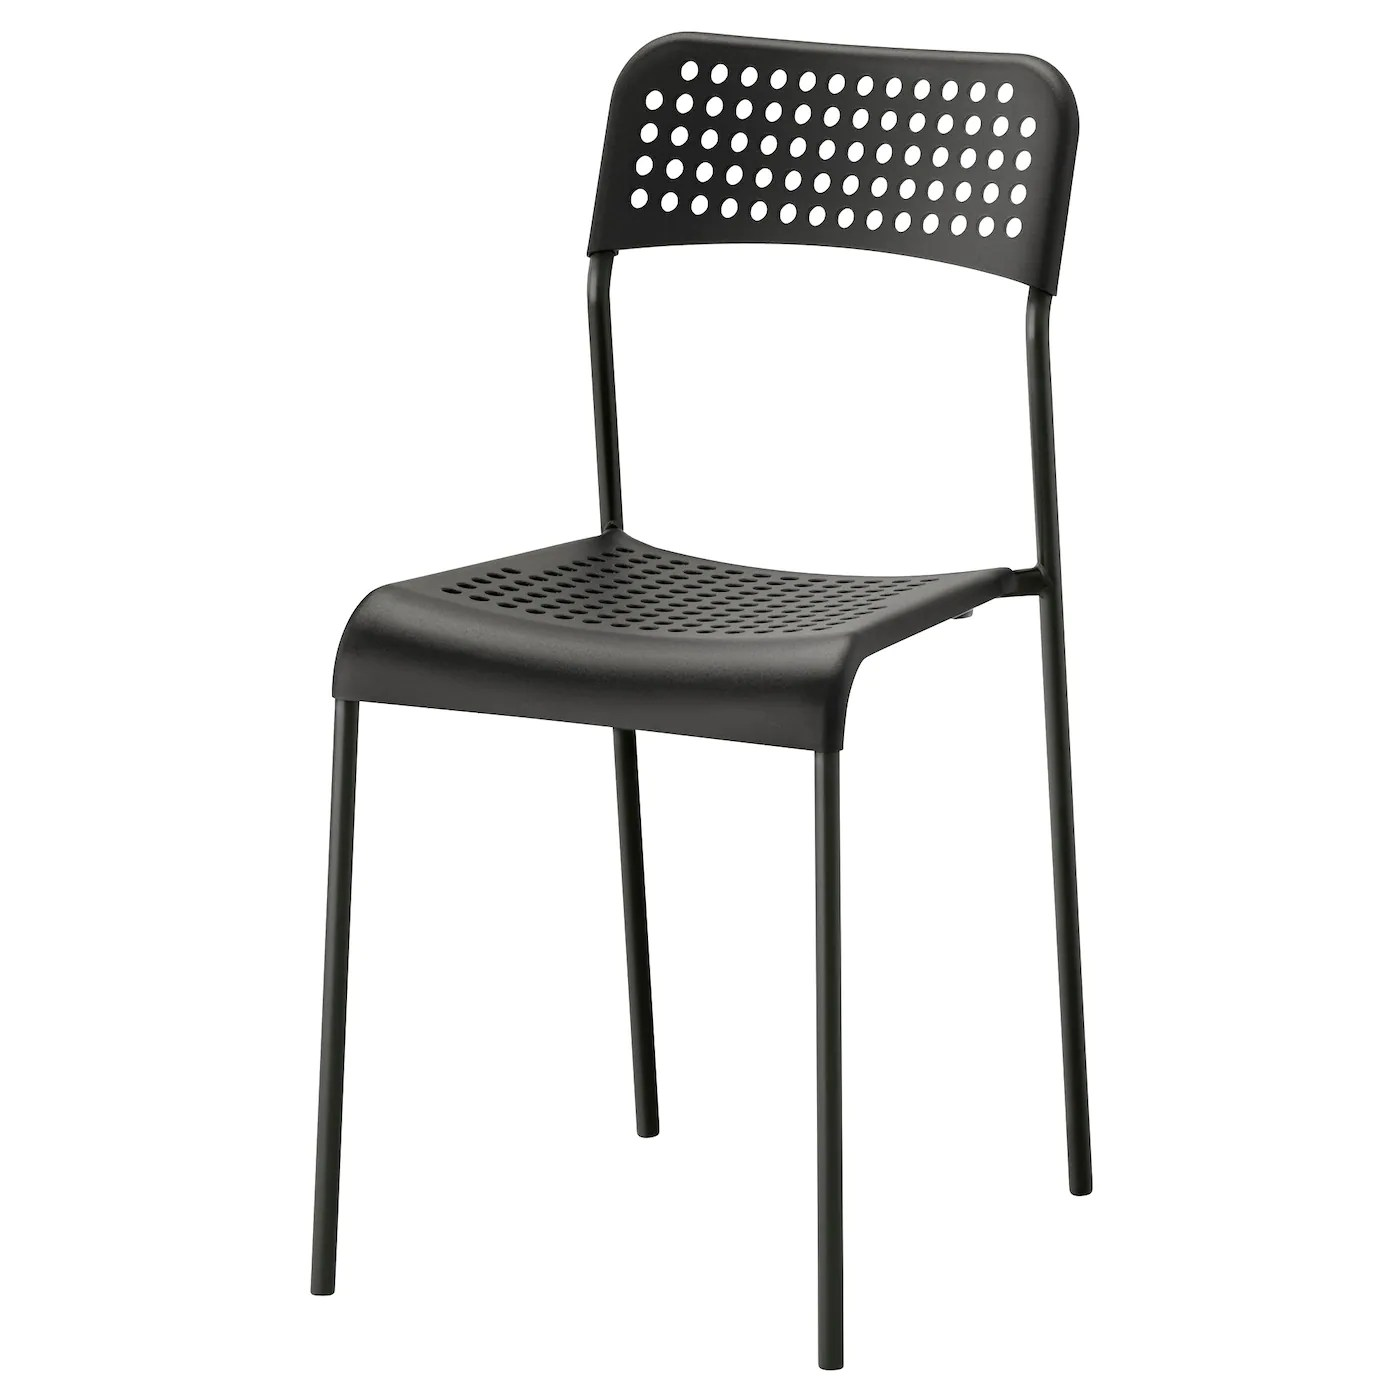 Ikea Black Chair Adde Chair Black Ikea